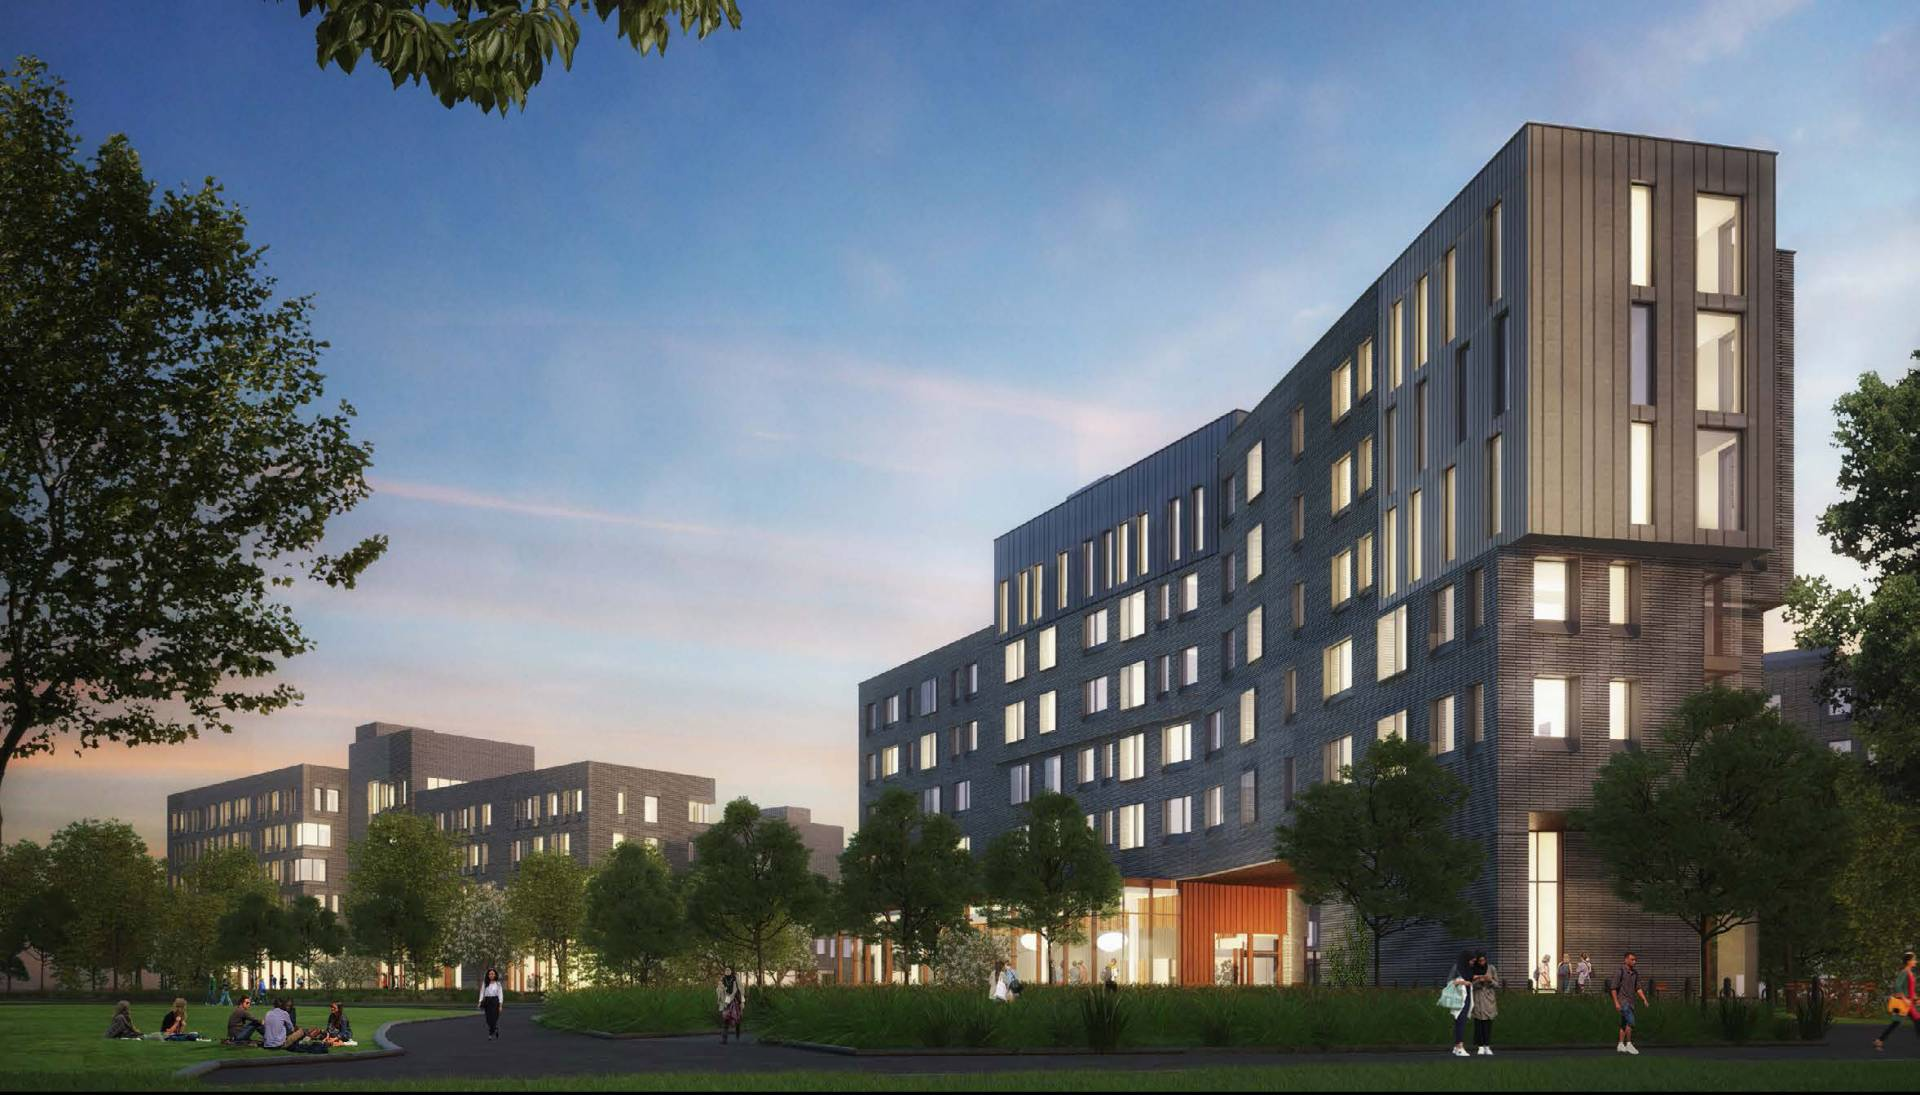 Architectural rendering of what new residential colleges may look like